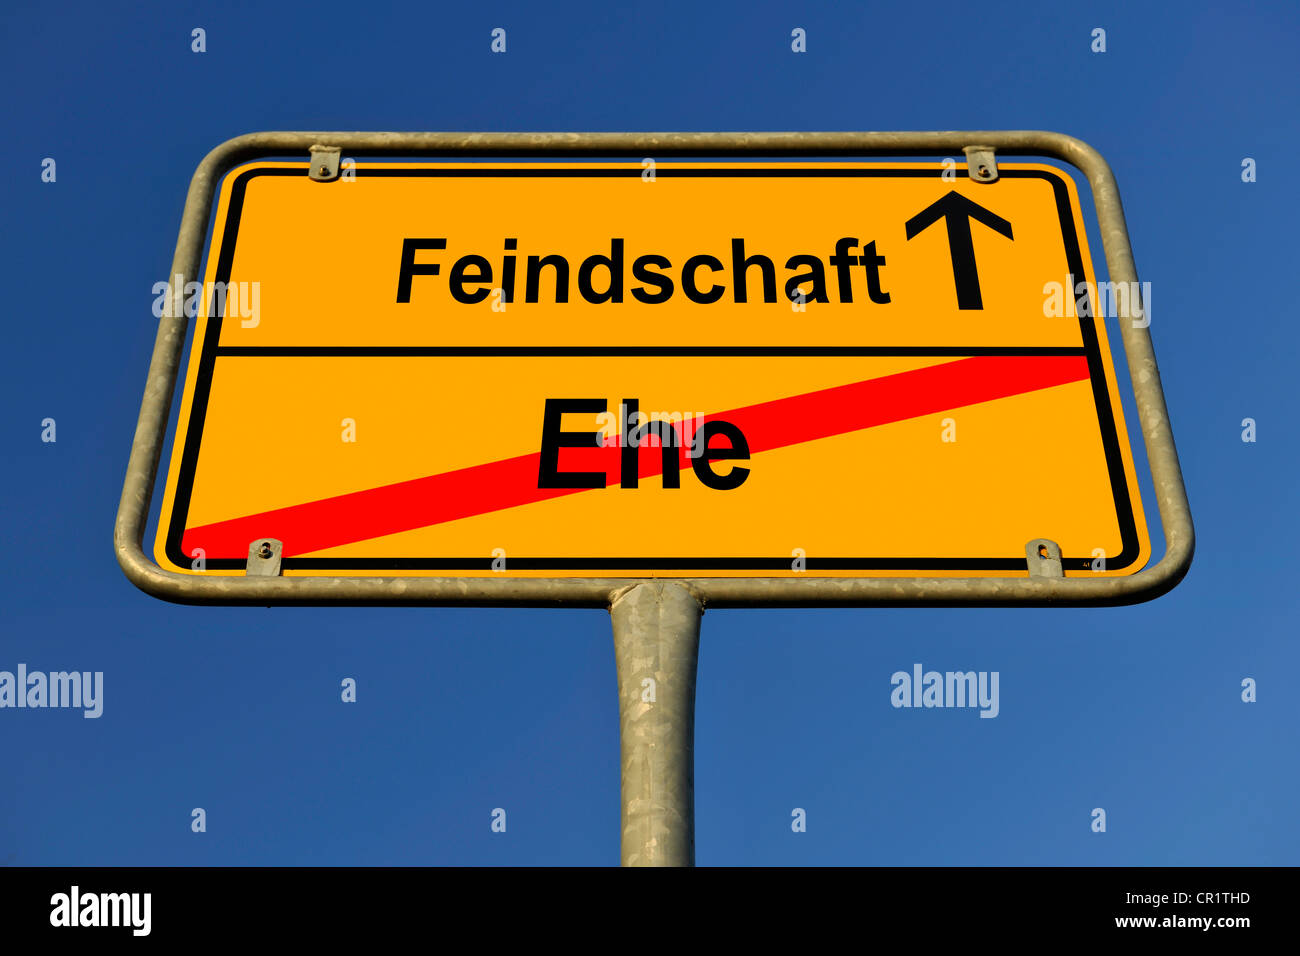 City limits sign with the words Feindschaft and Ehe, German for hostility and marriage, symbolic image for the end - Stock Image